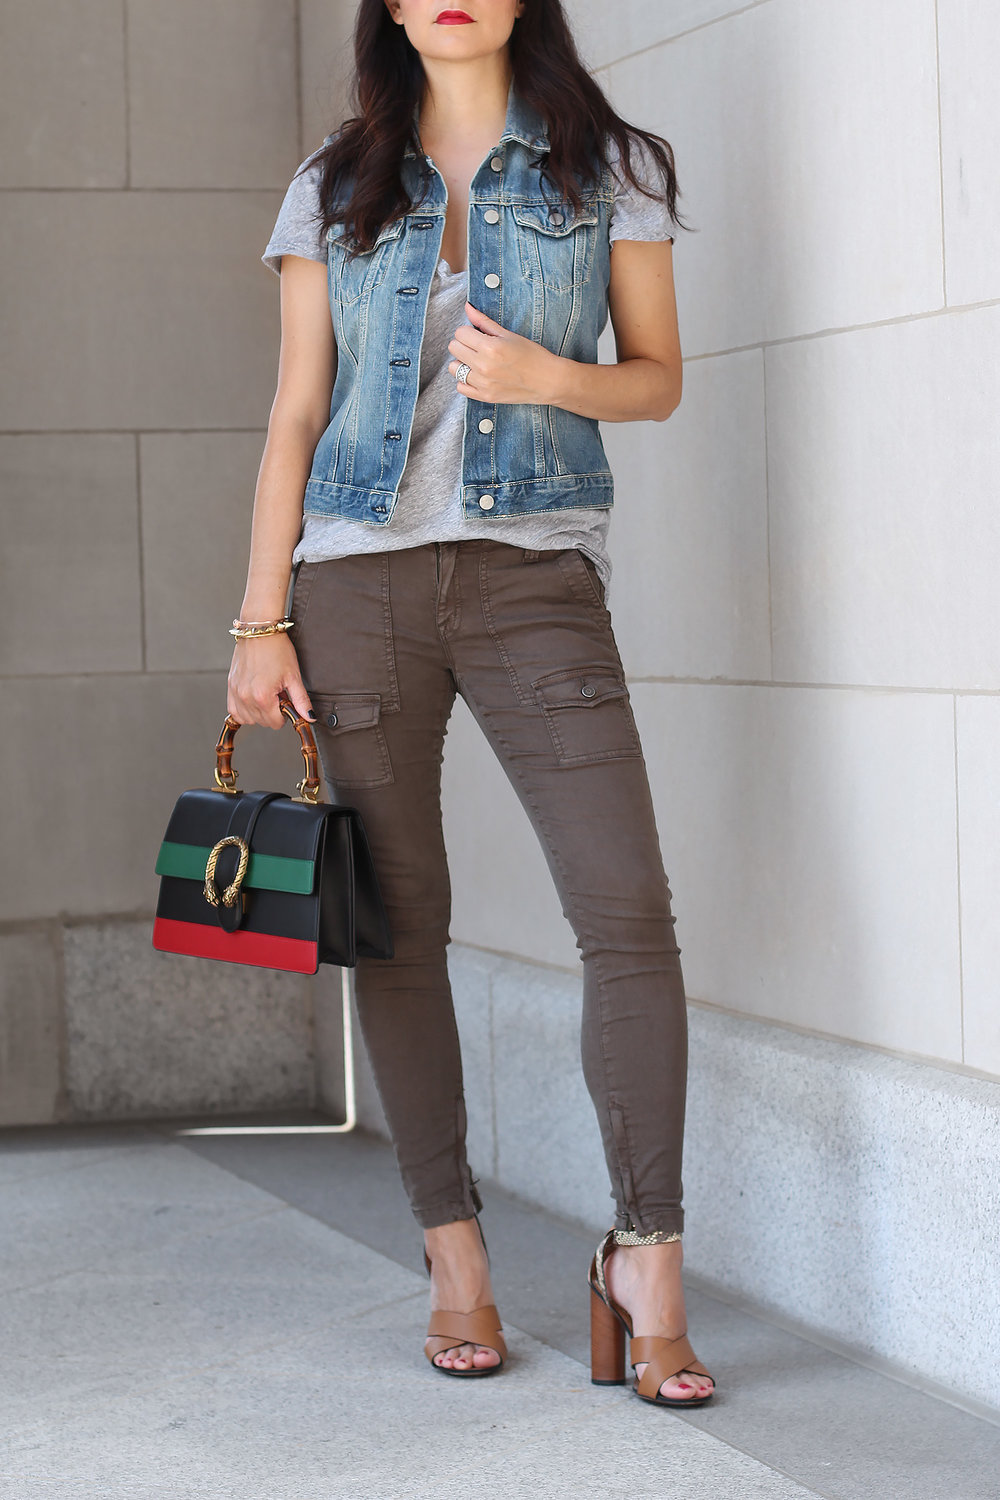 Olive Green Pants Outfit